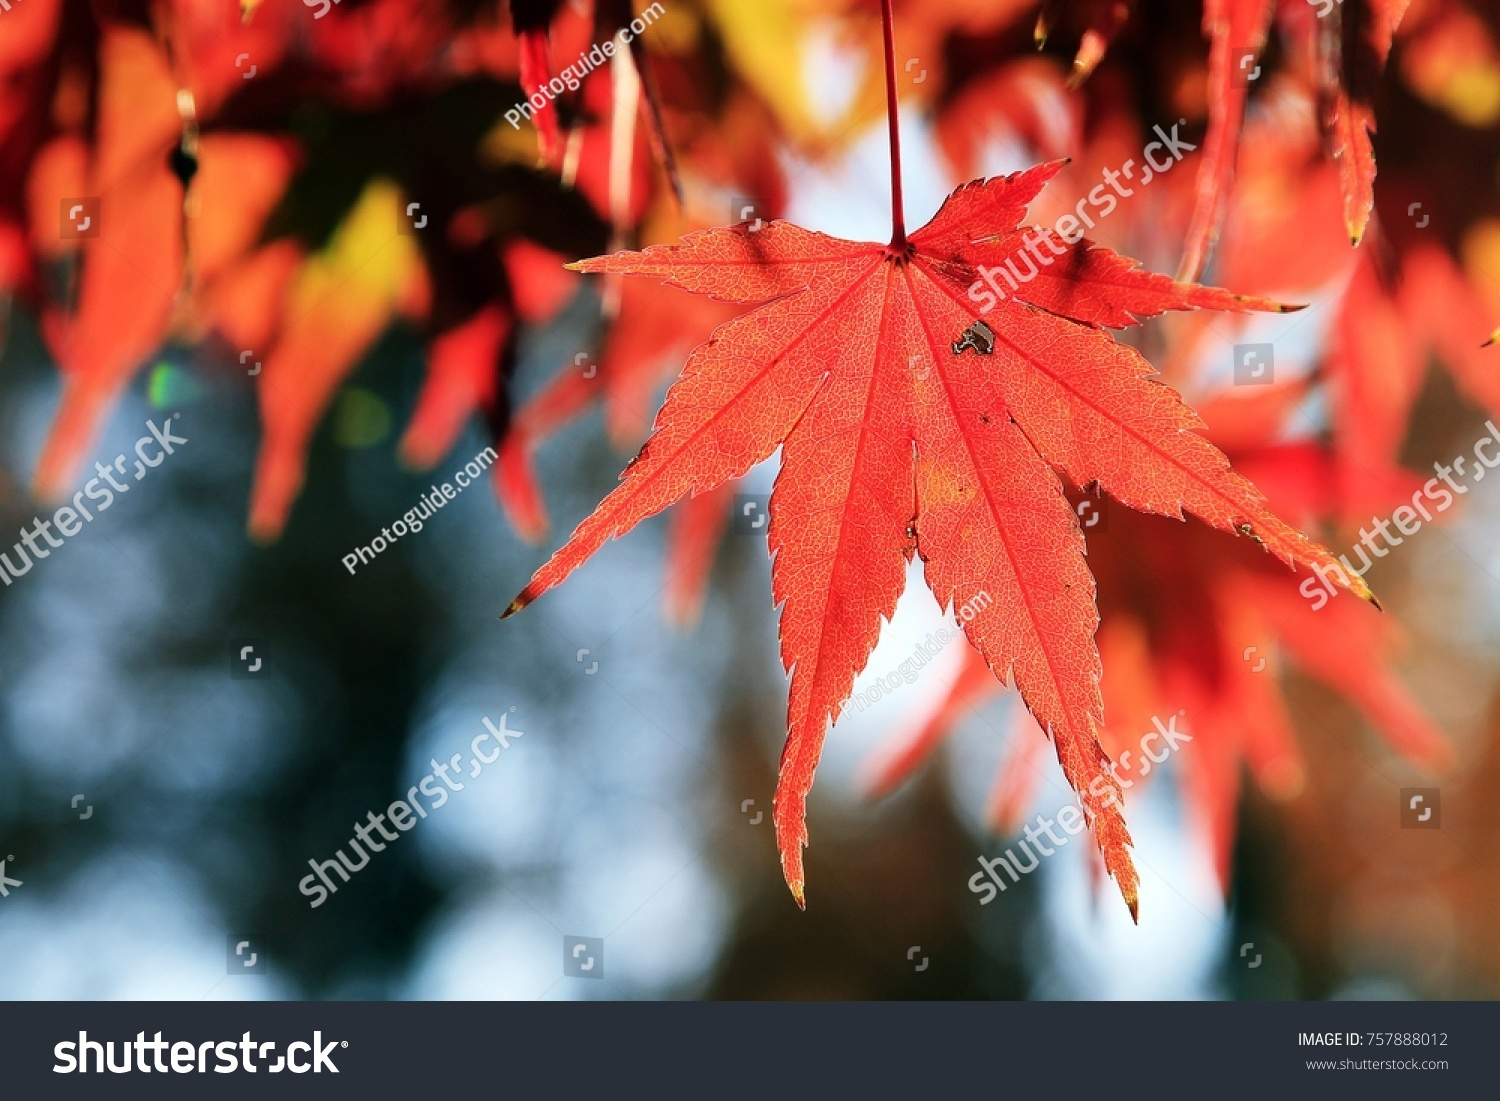 Flaming red maple leaves in autumn #757888012